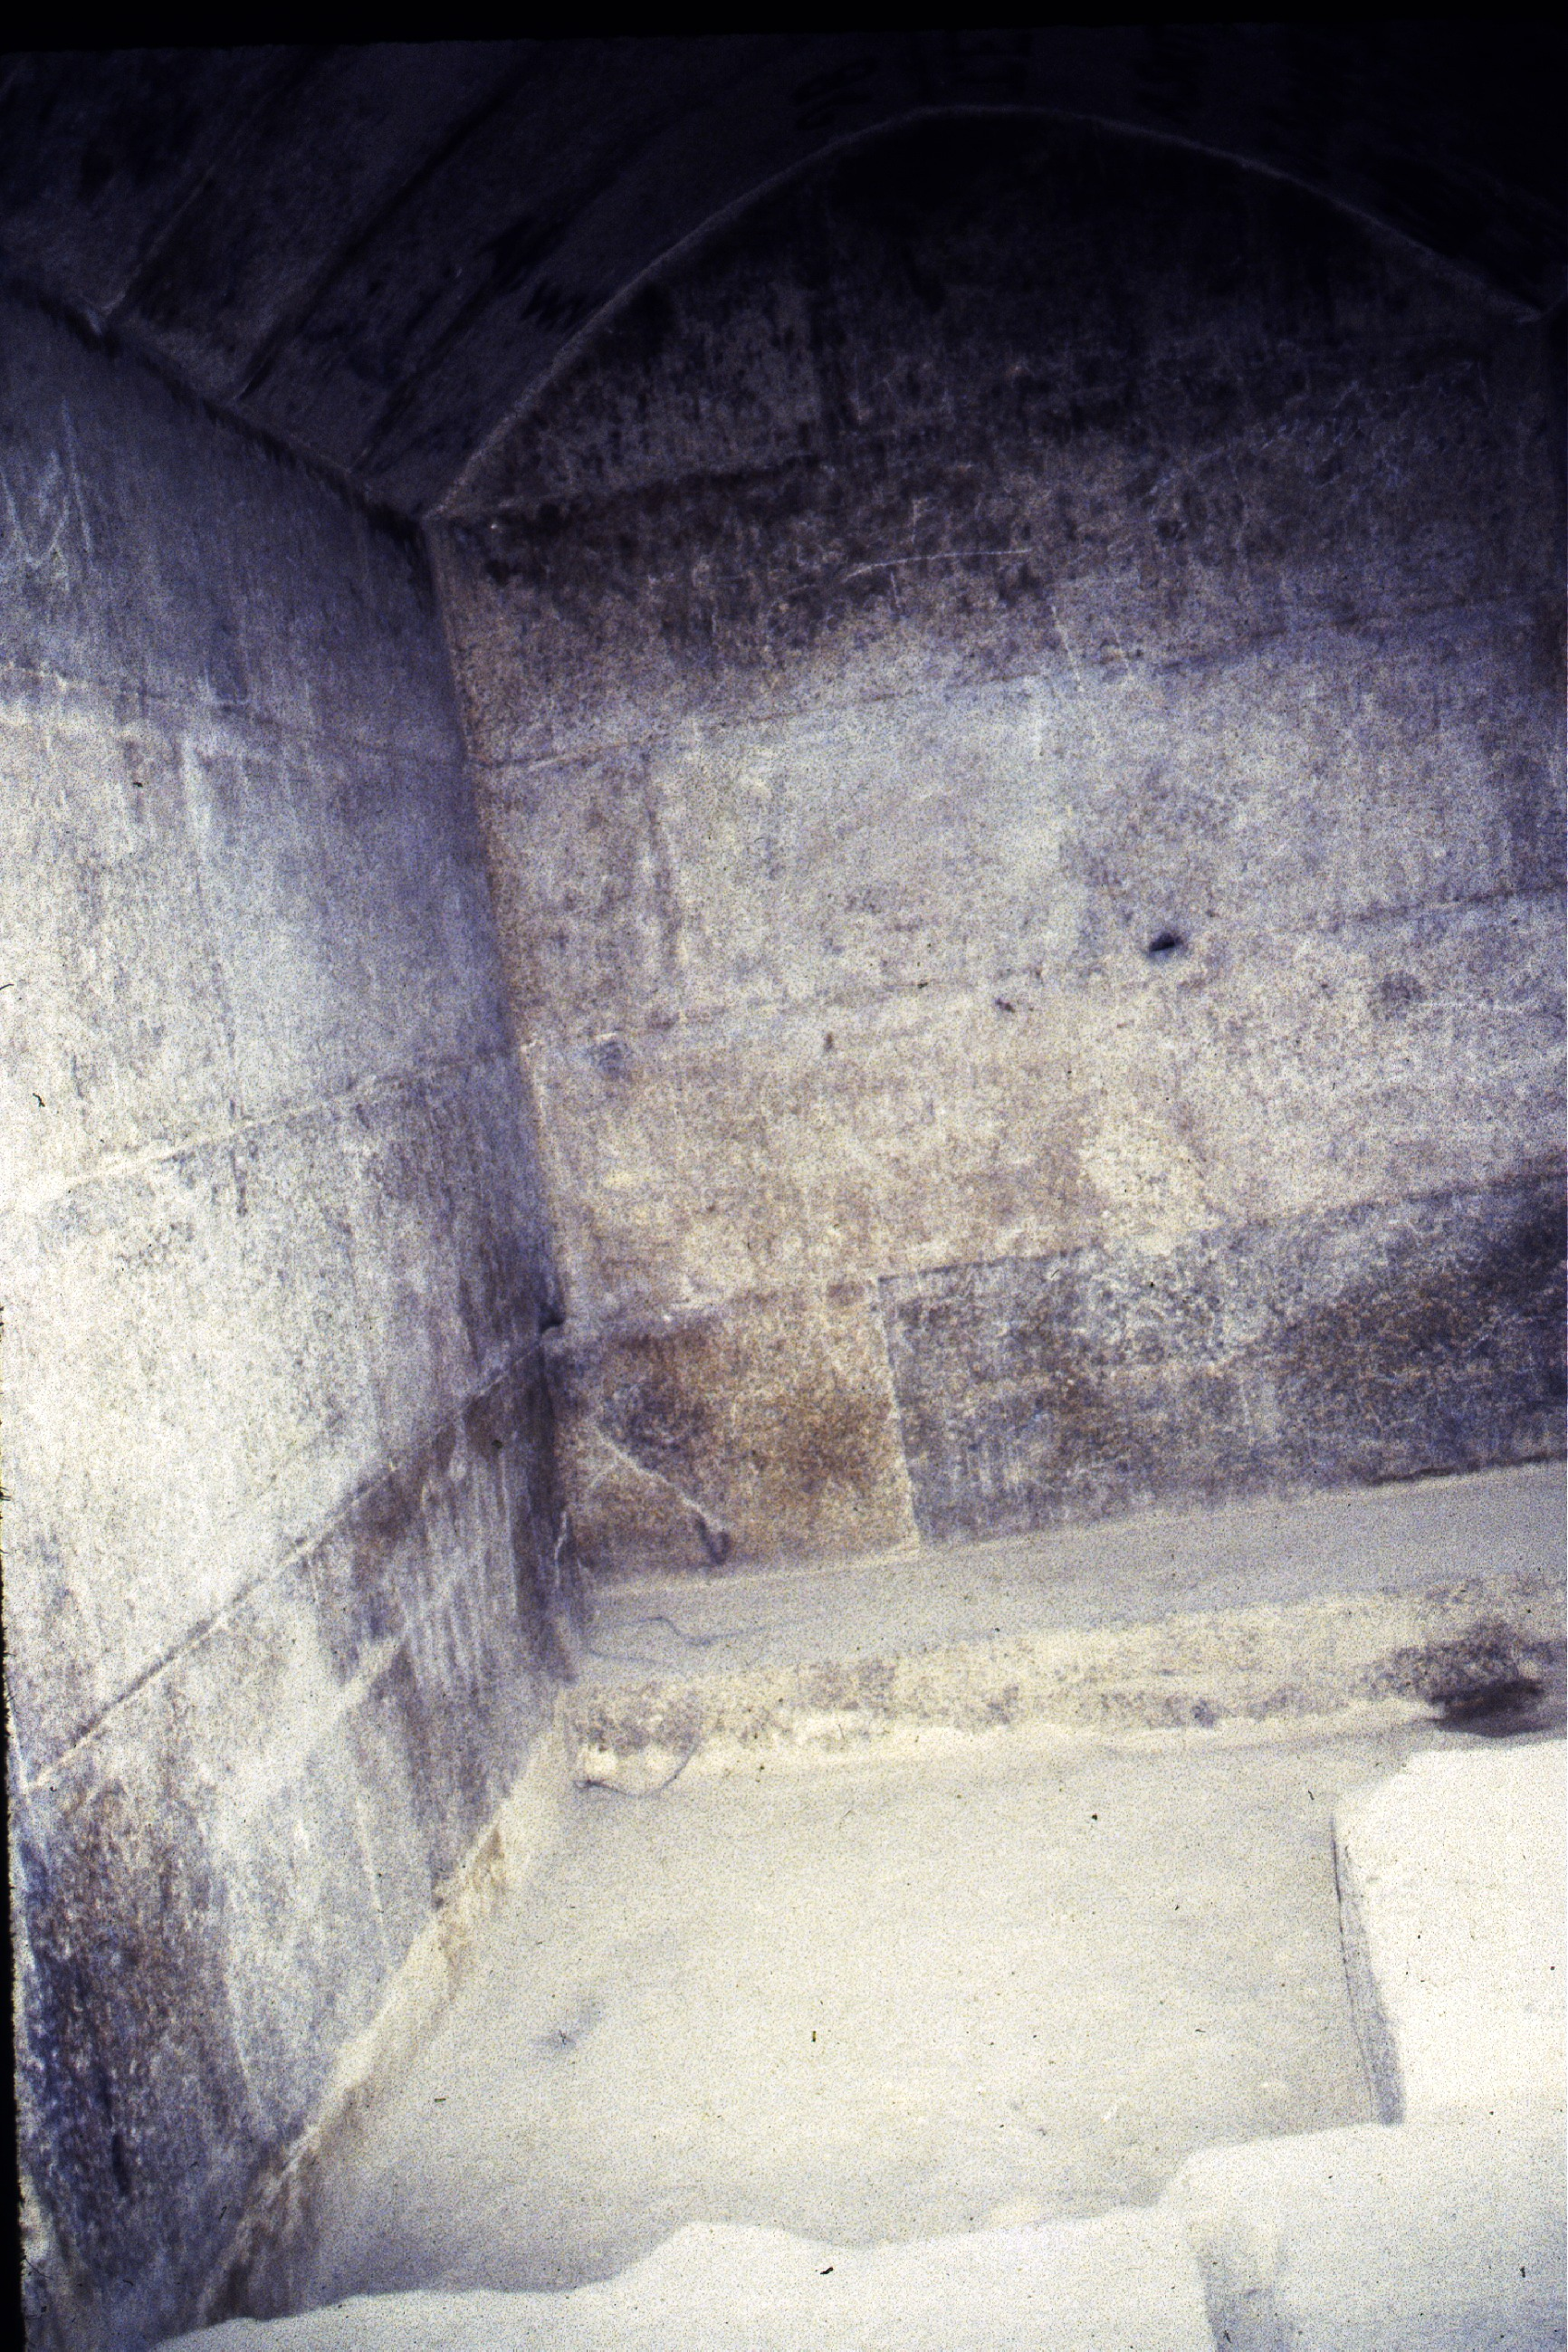 ONE OF THE SUBTERRANEAN CHAMBERS